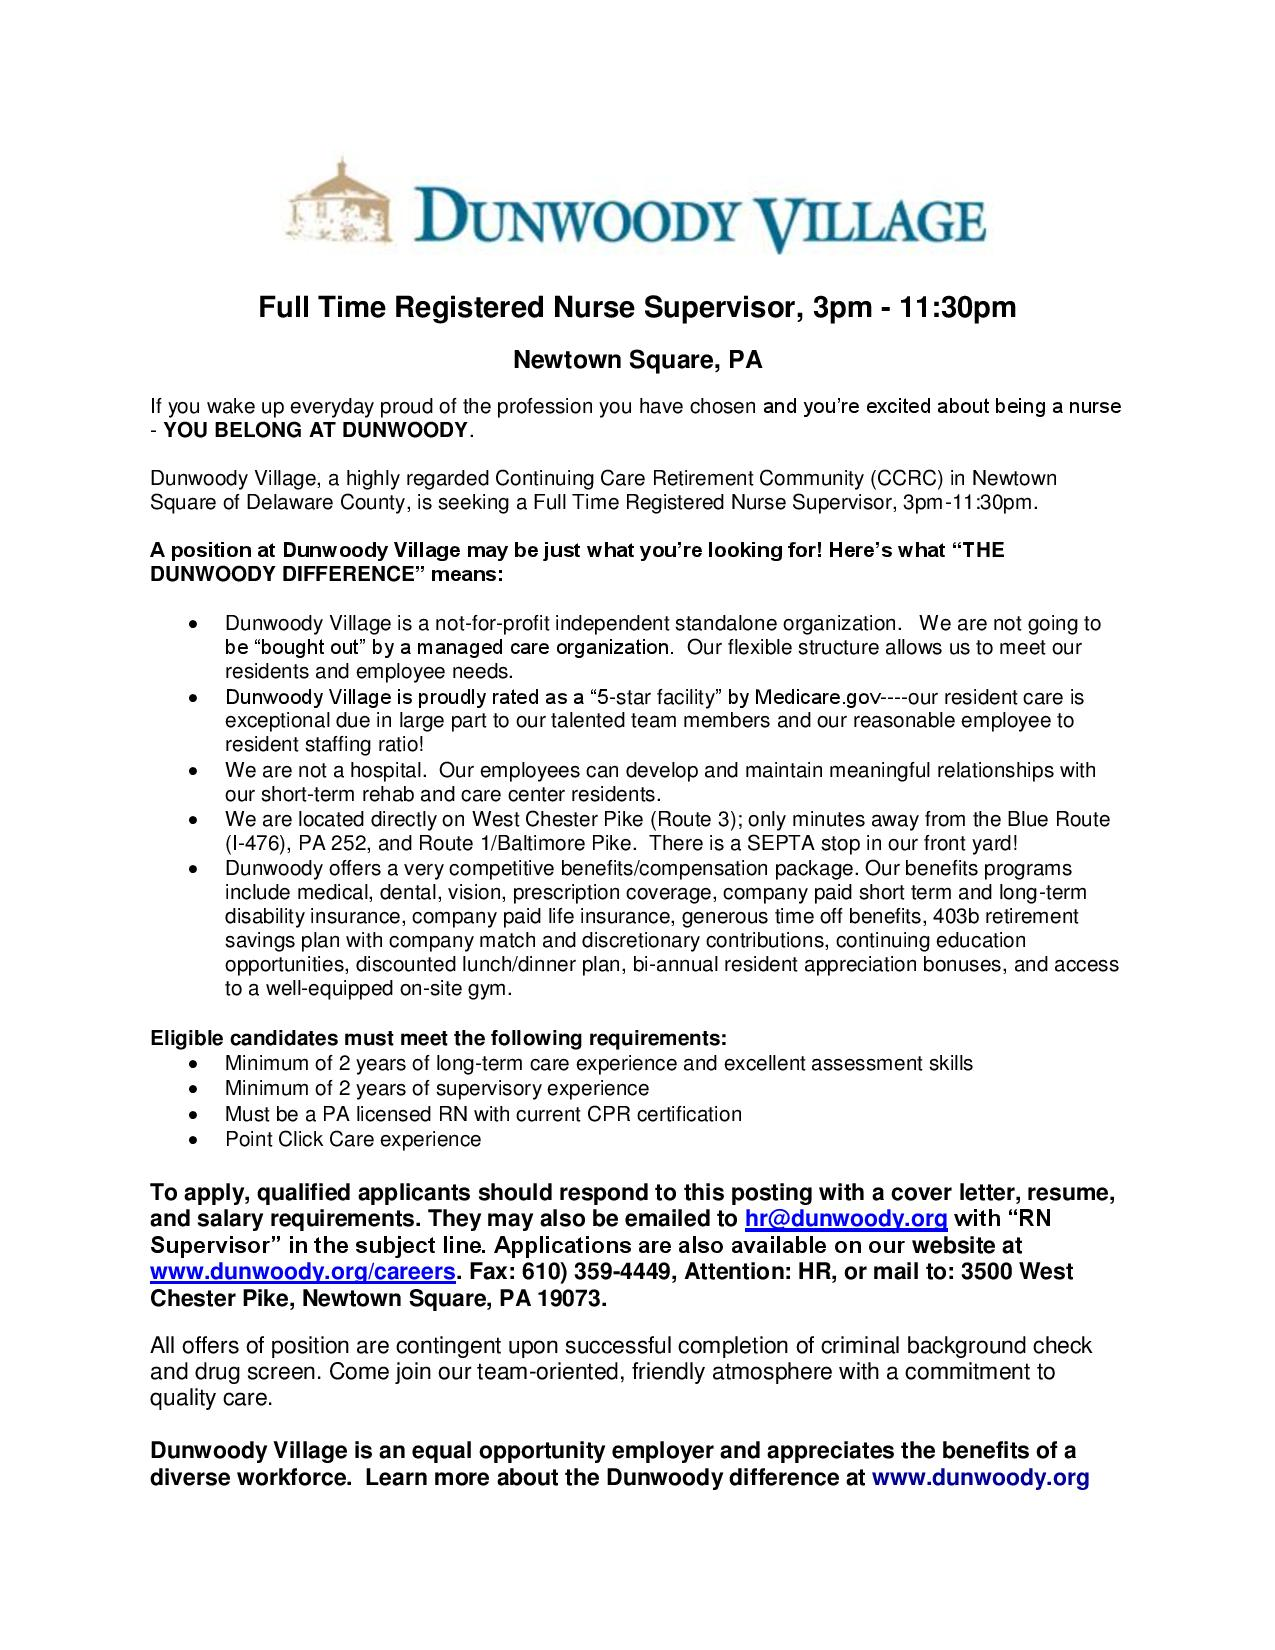 Dietary Clerk Cover Letter Saraheppscom examples of personal resumes